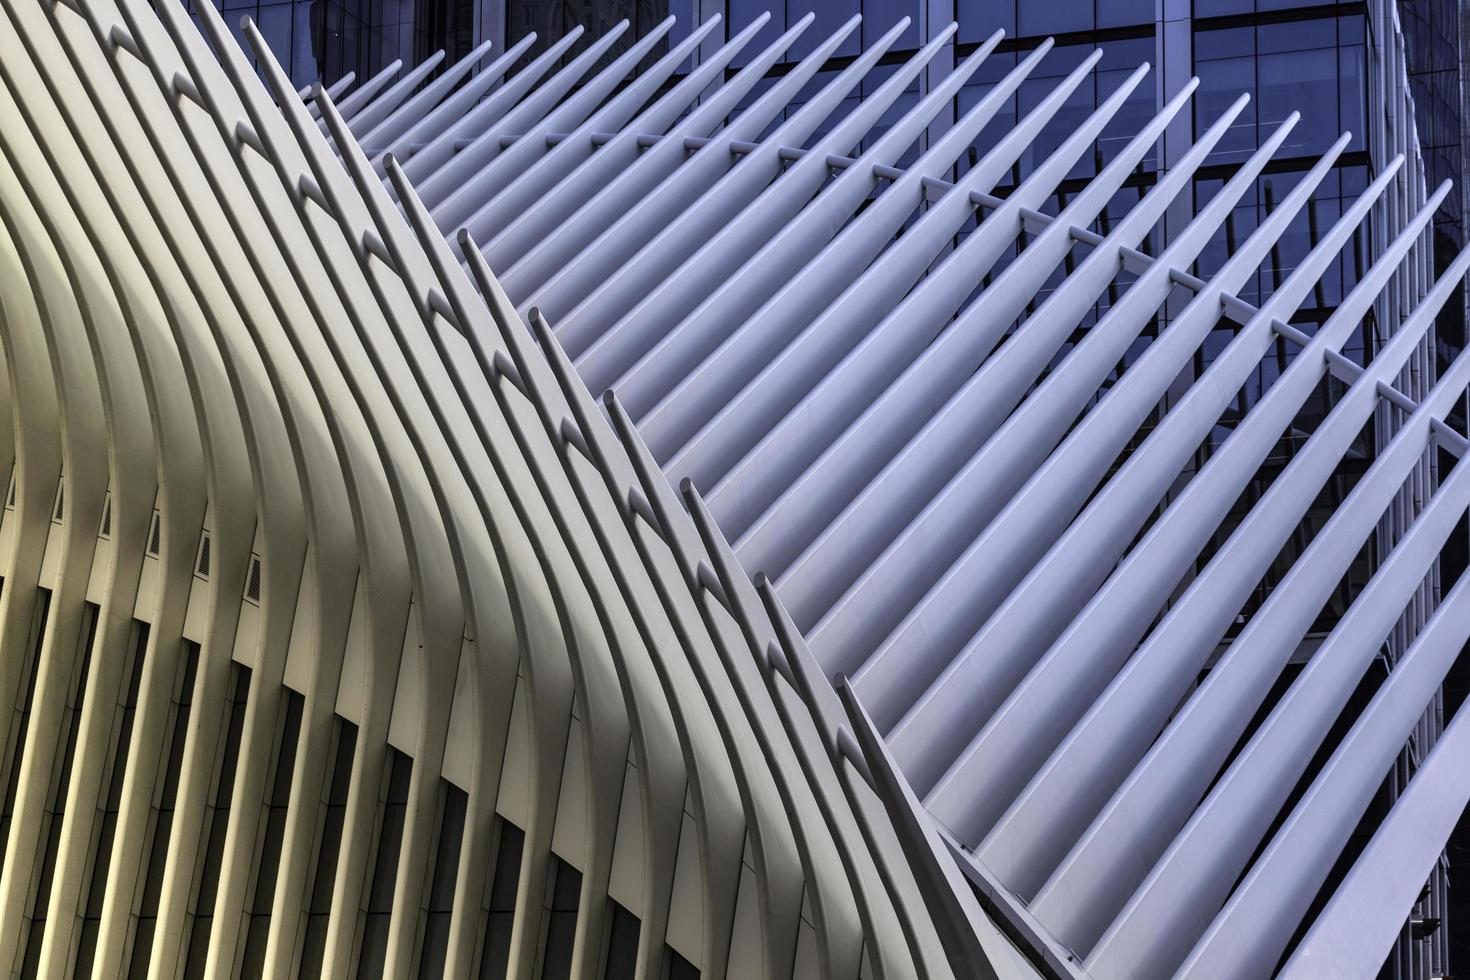 New York City, 2020 - Close-up of metal architecture photo